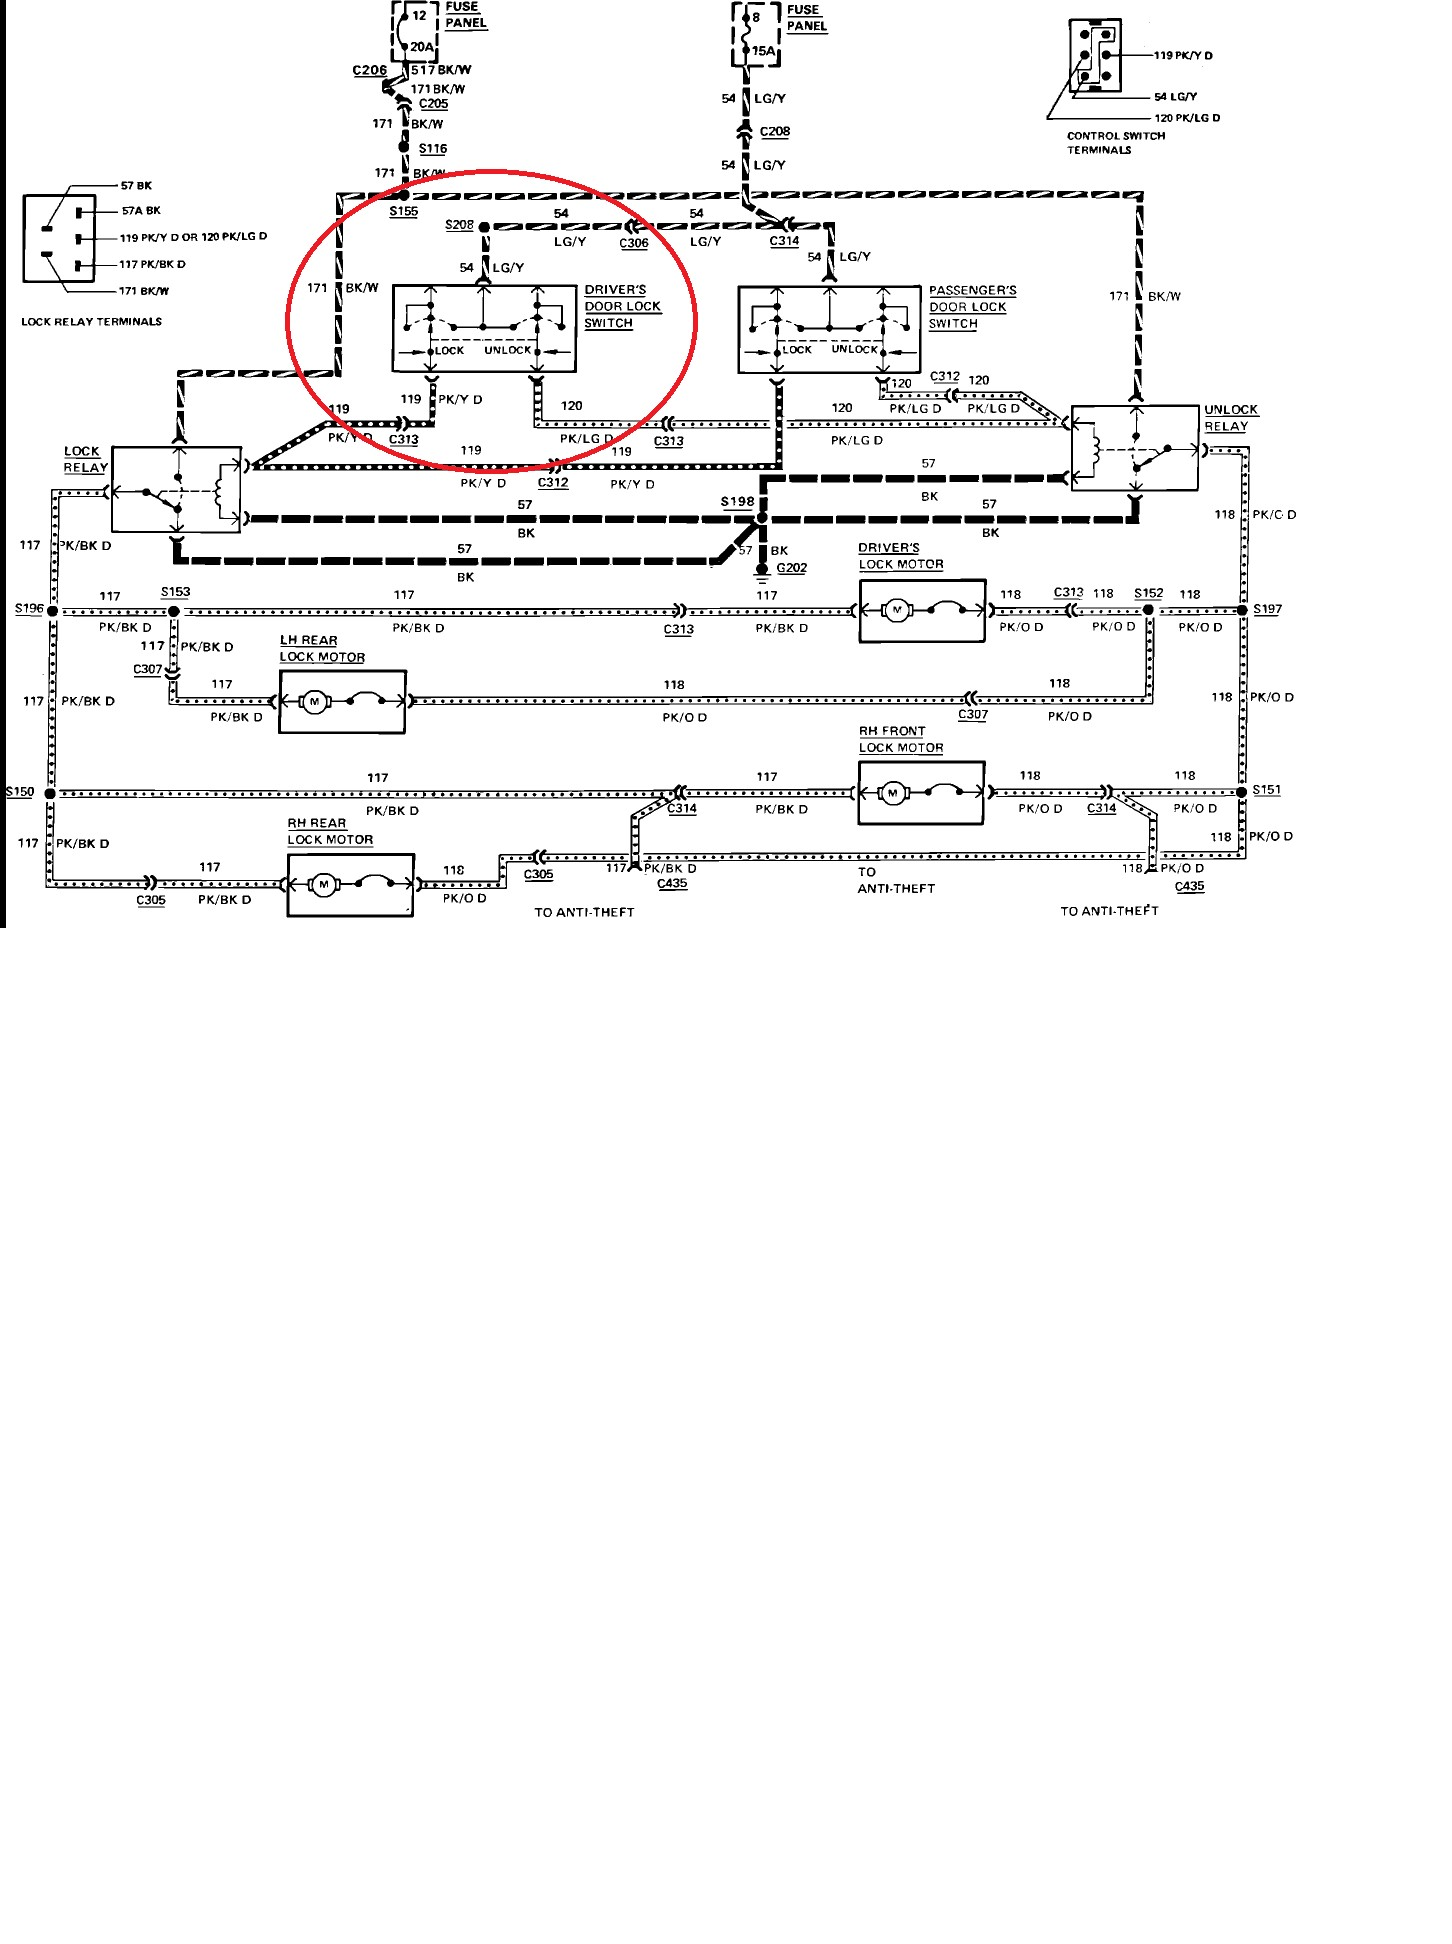 2000 Lincoln town Car Wiring Diagram Door Lock Switch Does Not Work Clock Neither they are Both Connected Of 2000 Lincoln town Car Wiring Diagram